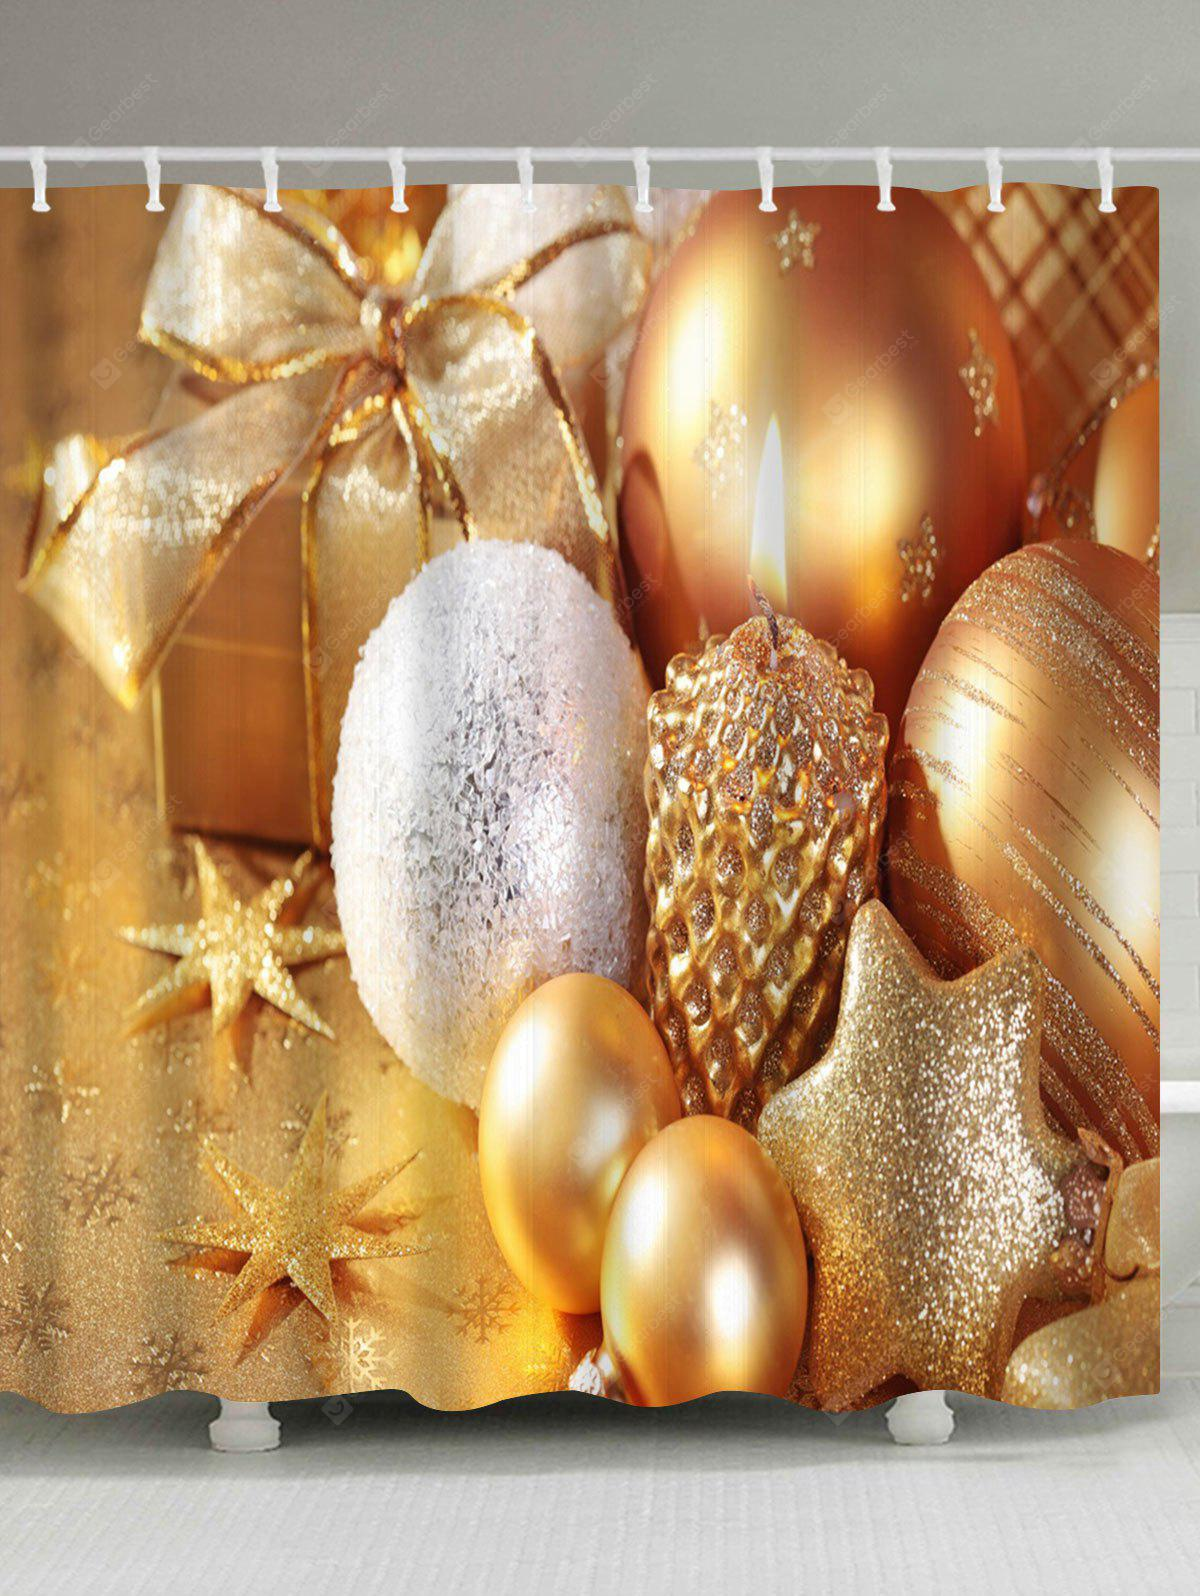 Christmas Candle Ornaments Waterproof Shower Curtain